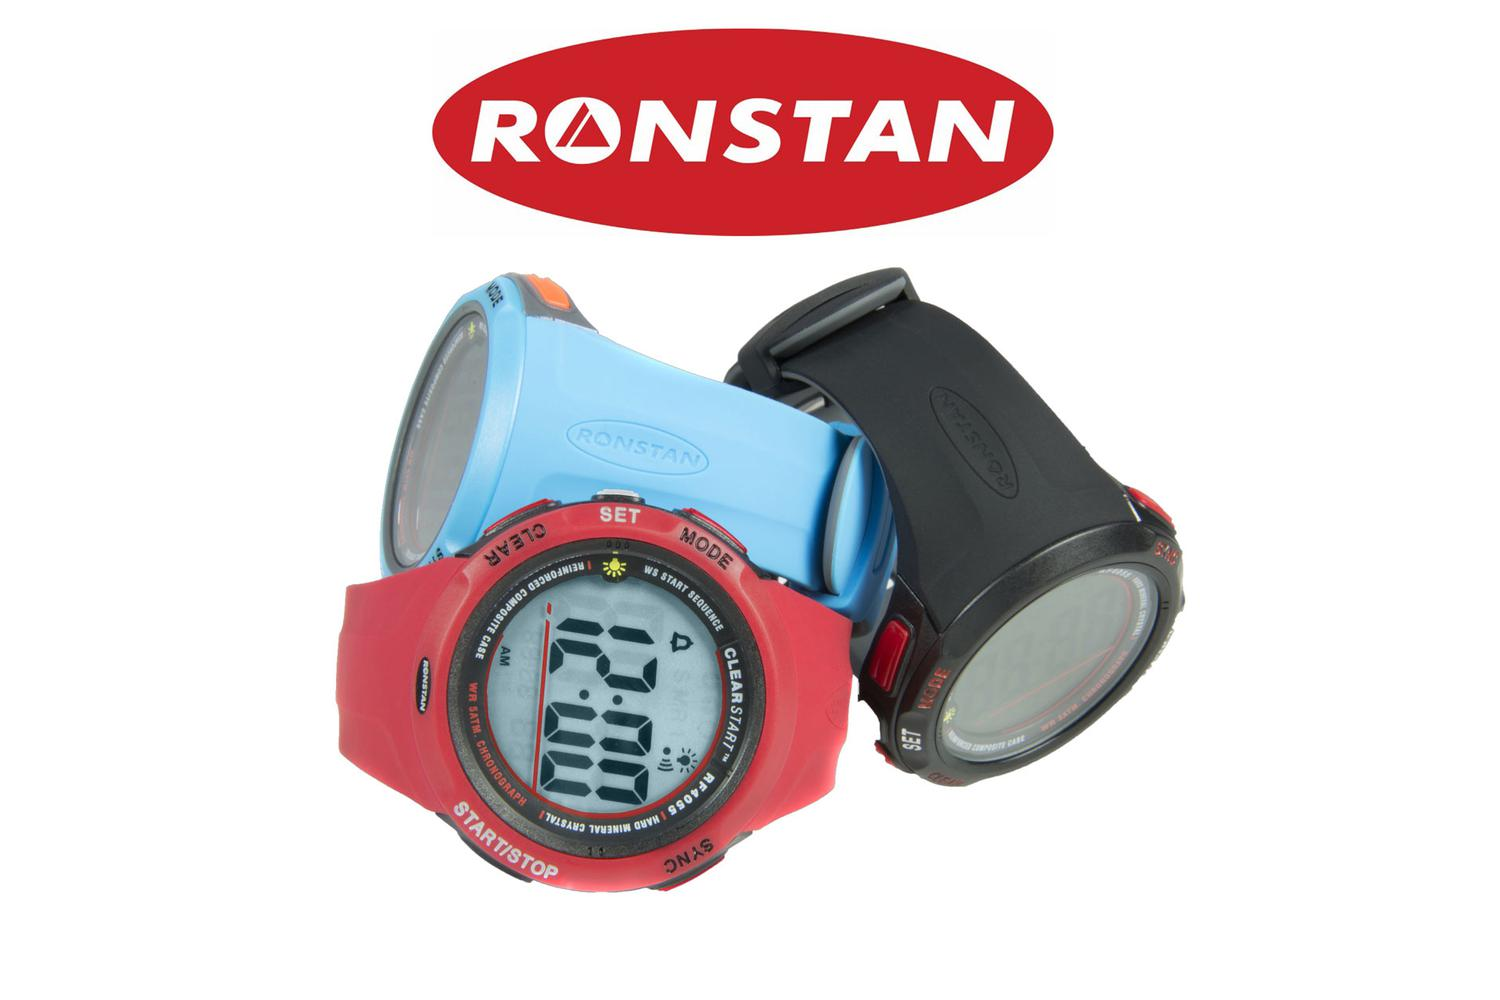 Ronstan zeilhorloge RF4055A Clear start 50 mm - zwart 2